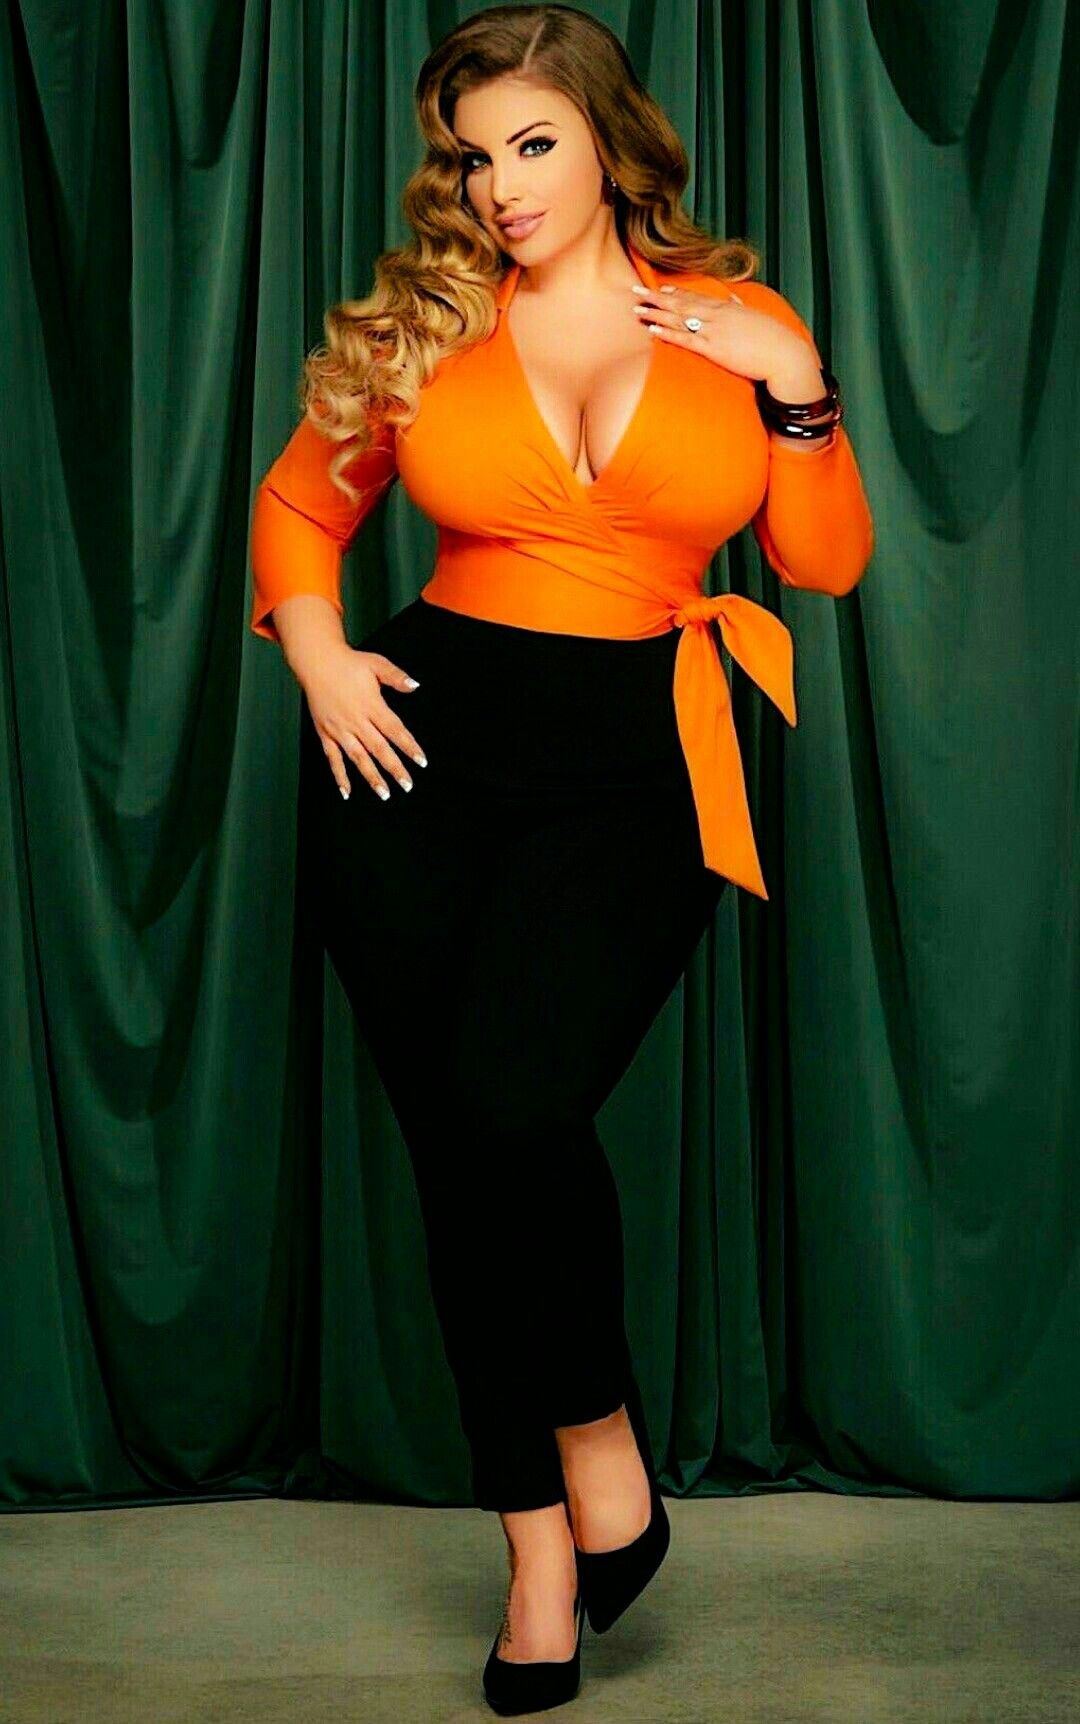 Images about ashley alexiss on pinterest model